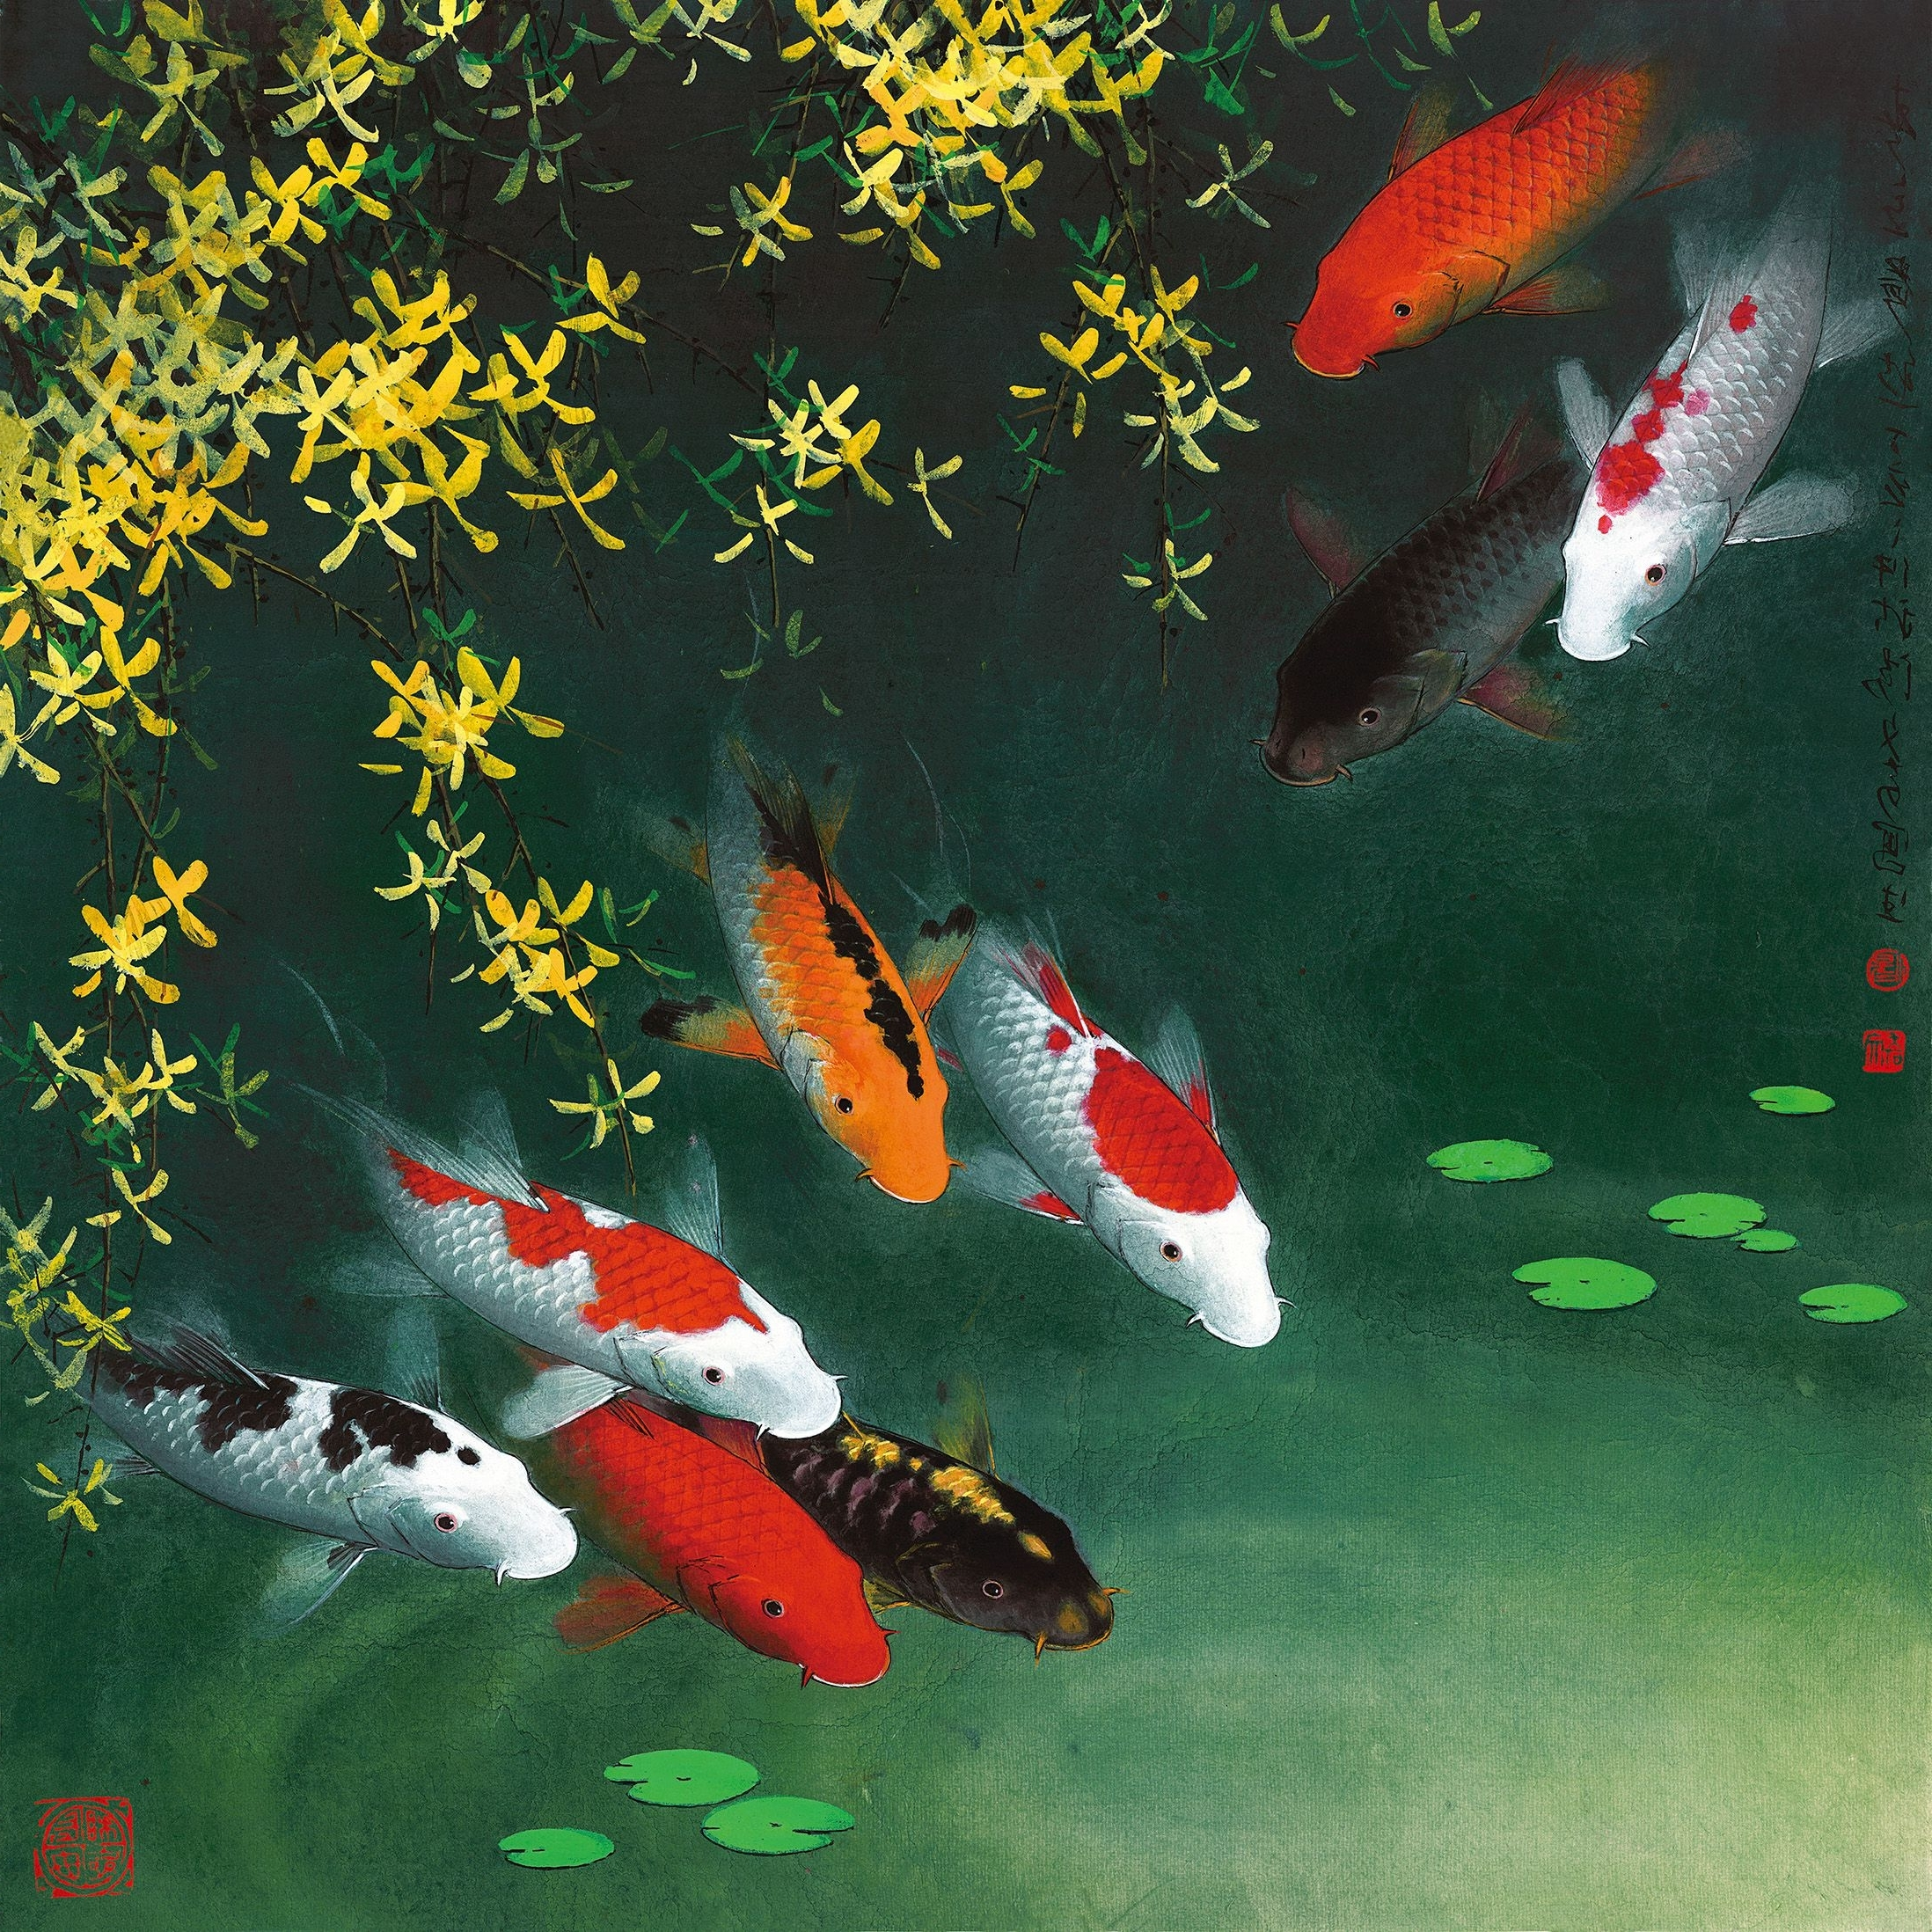 1523 Fine Art Paintings Giclee Art Prints On Canvas Koi Fish Wall For 2018 Fish Painting Wall Art (Gallery 13 of 20)